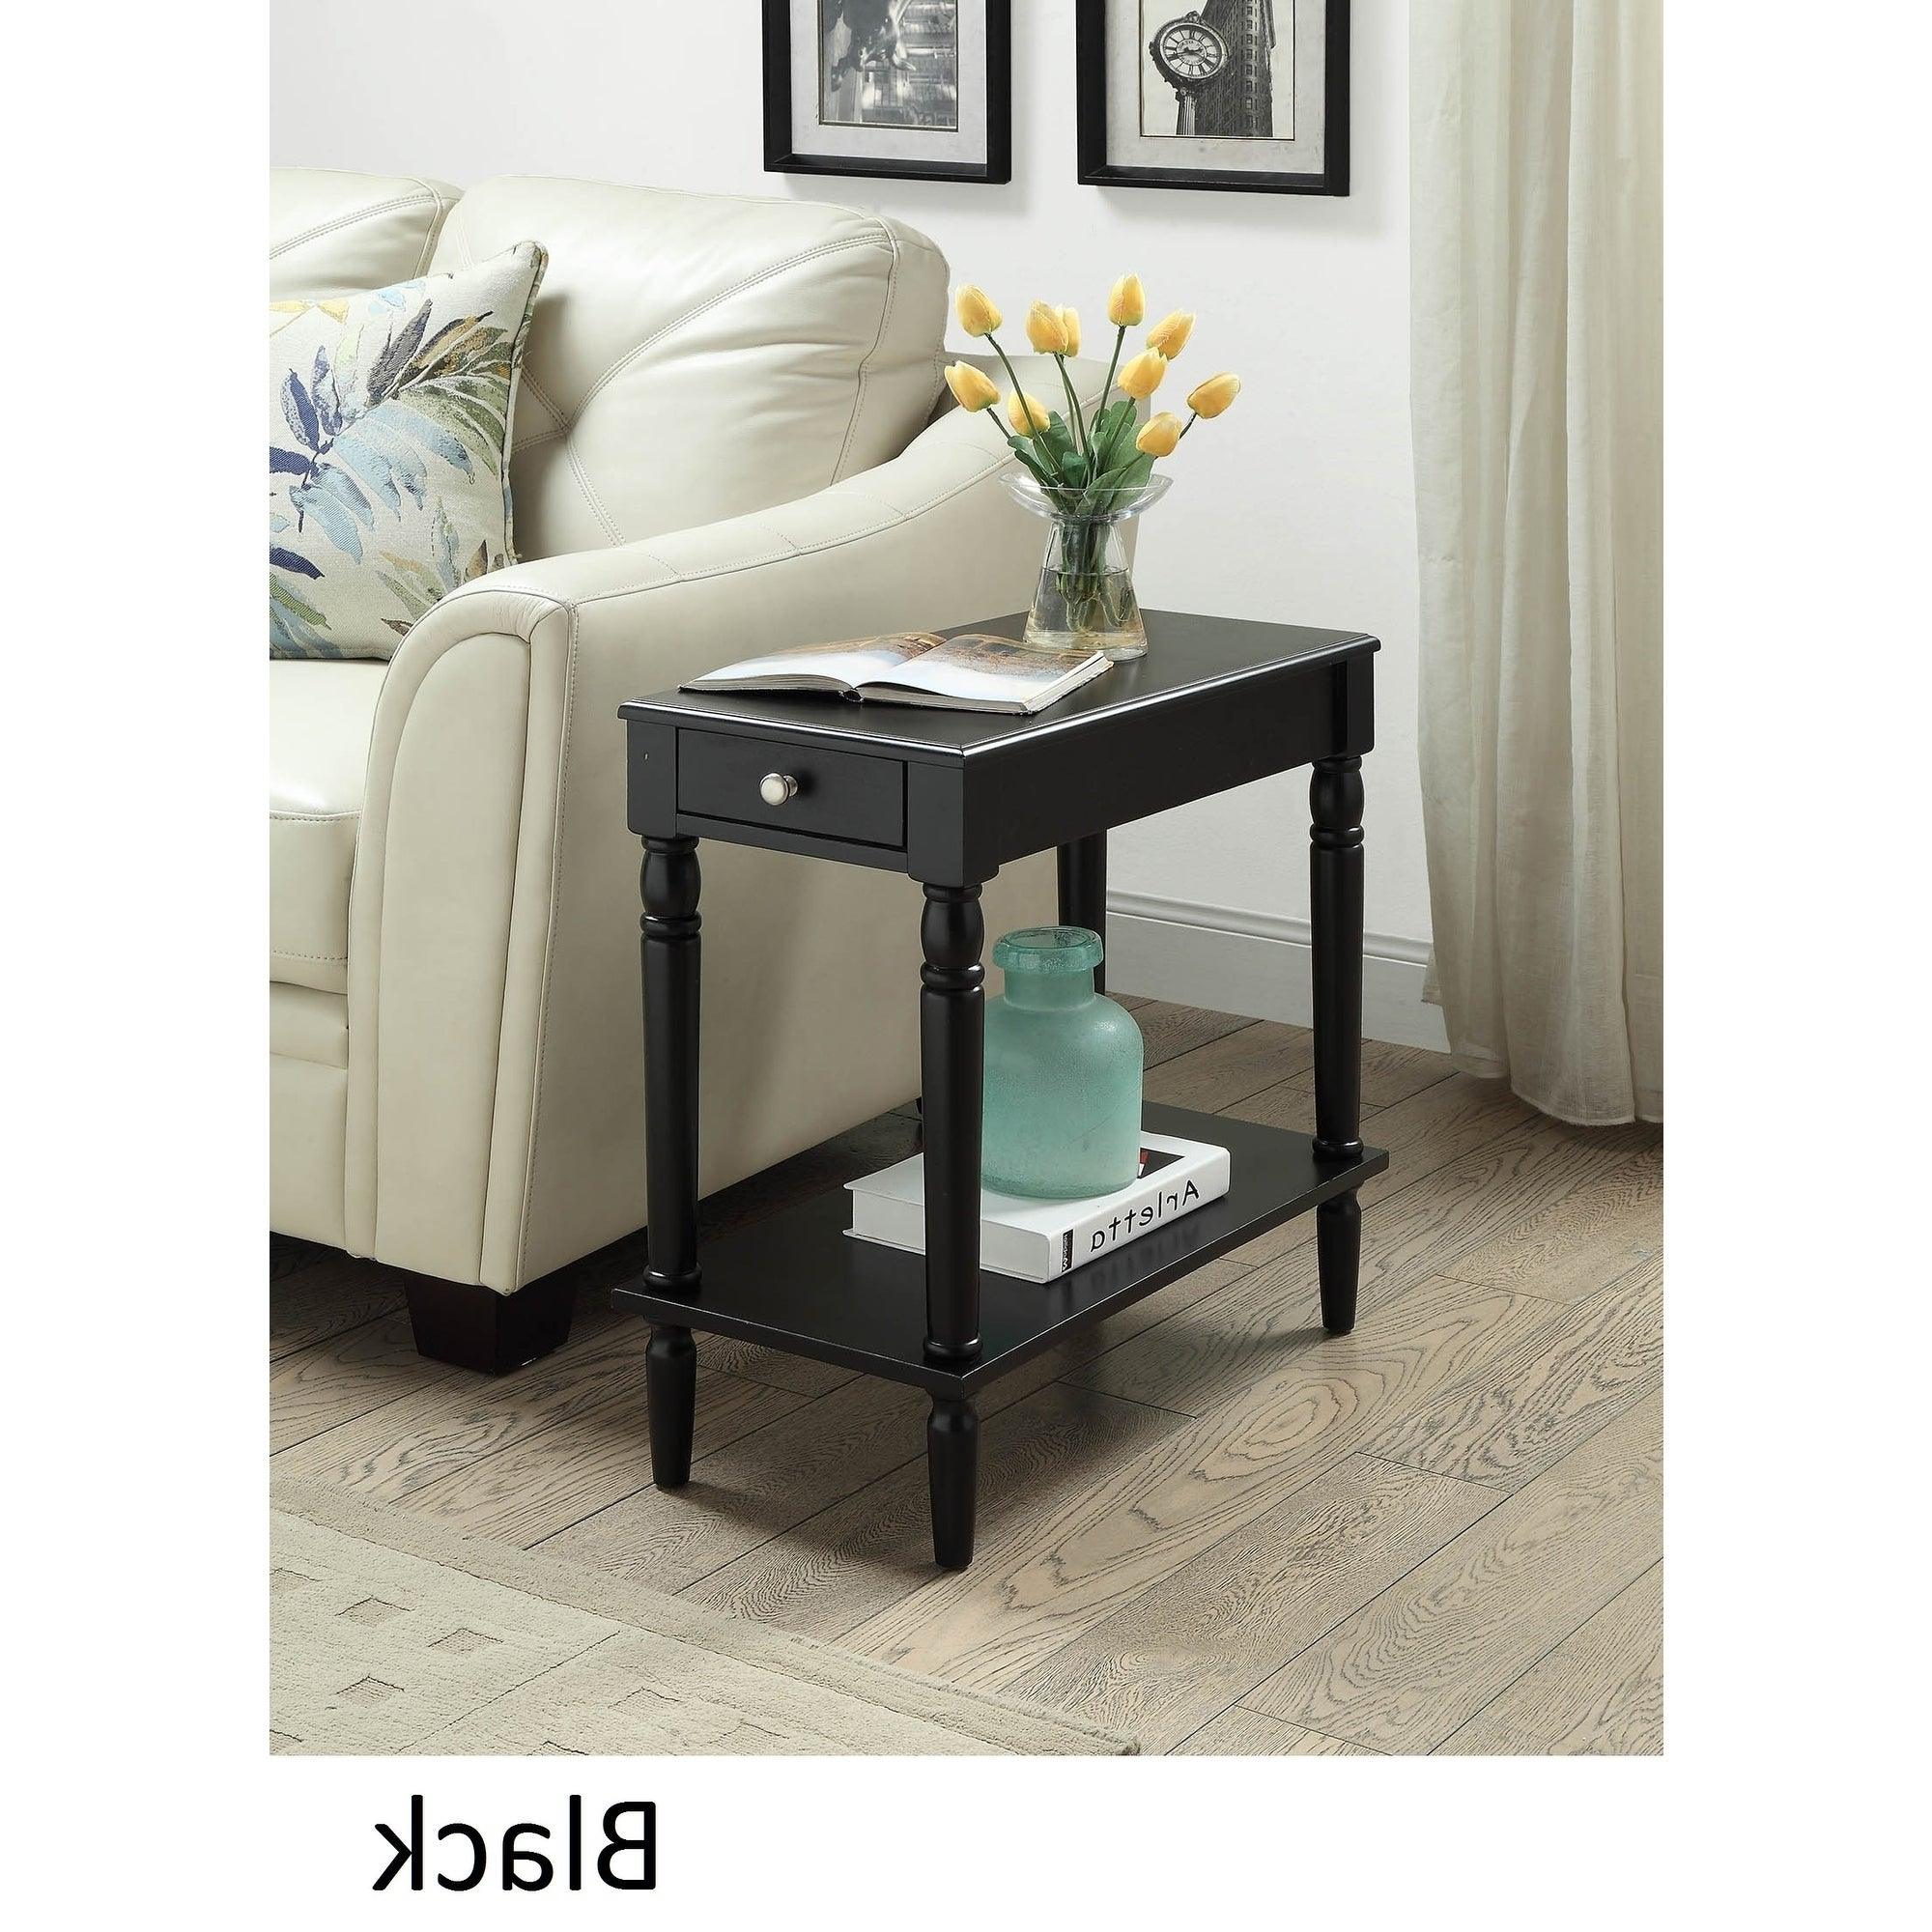 Copper Grove Lantana Wooden Chairside Table With Regard To Most Current Copper Grove Lantana Coffee Tables (View 7 of 20)